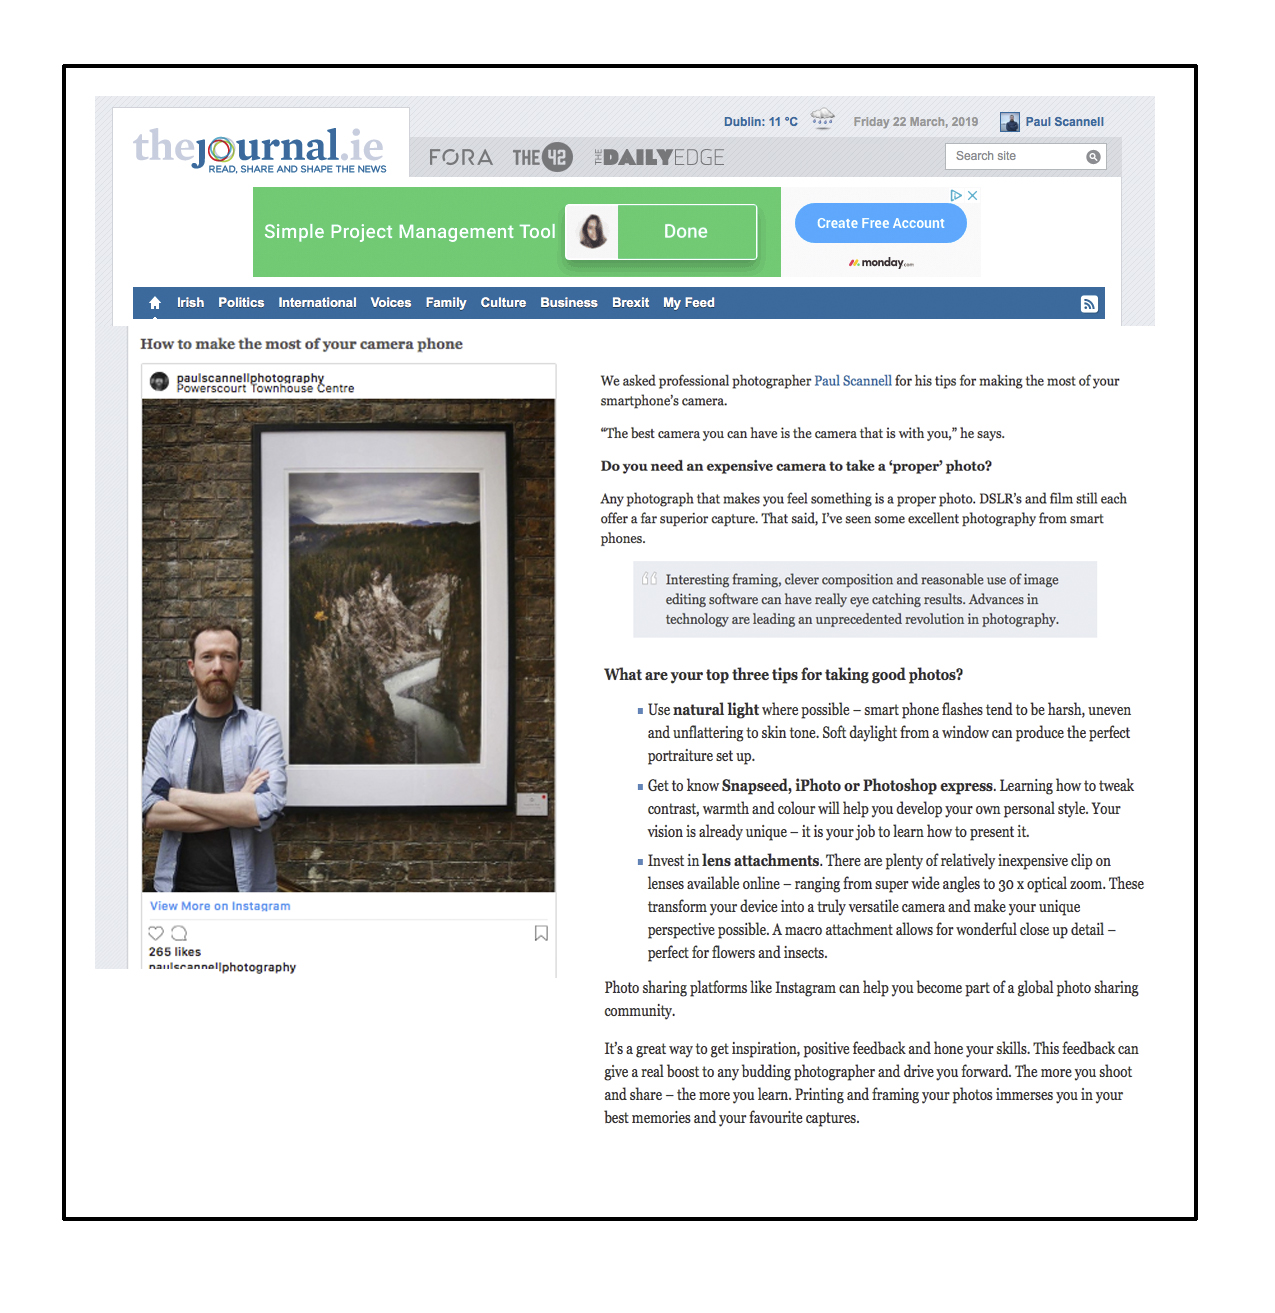 Journal.ie feature: https://www.thejournal.ie/live-a-better-life-using-your-camera-3337144-May2017/